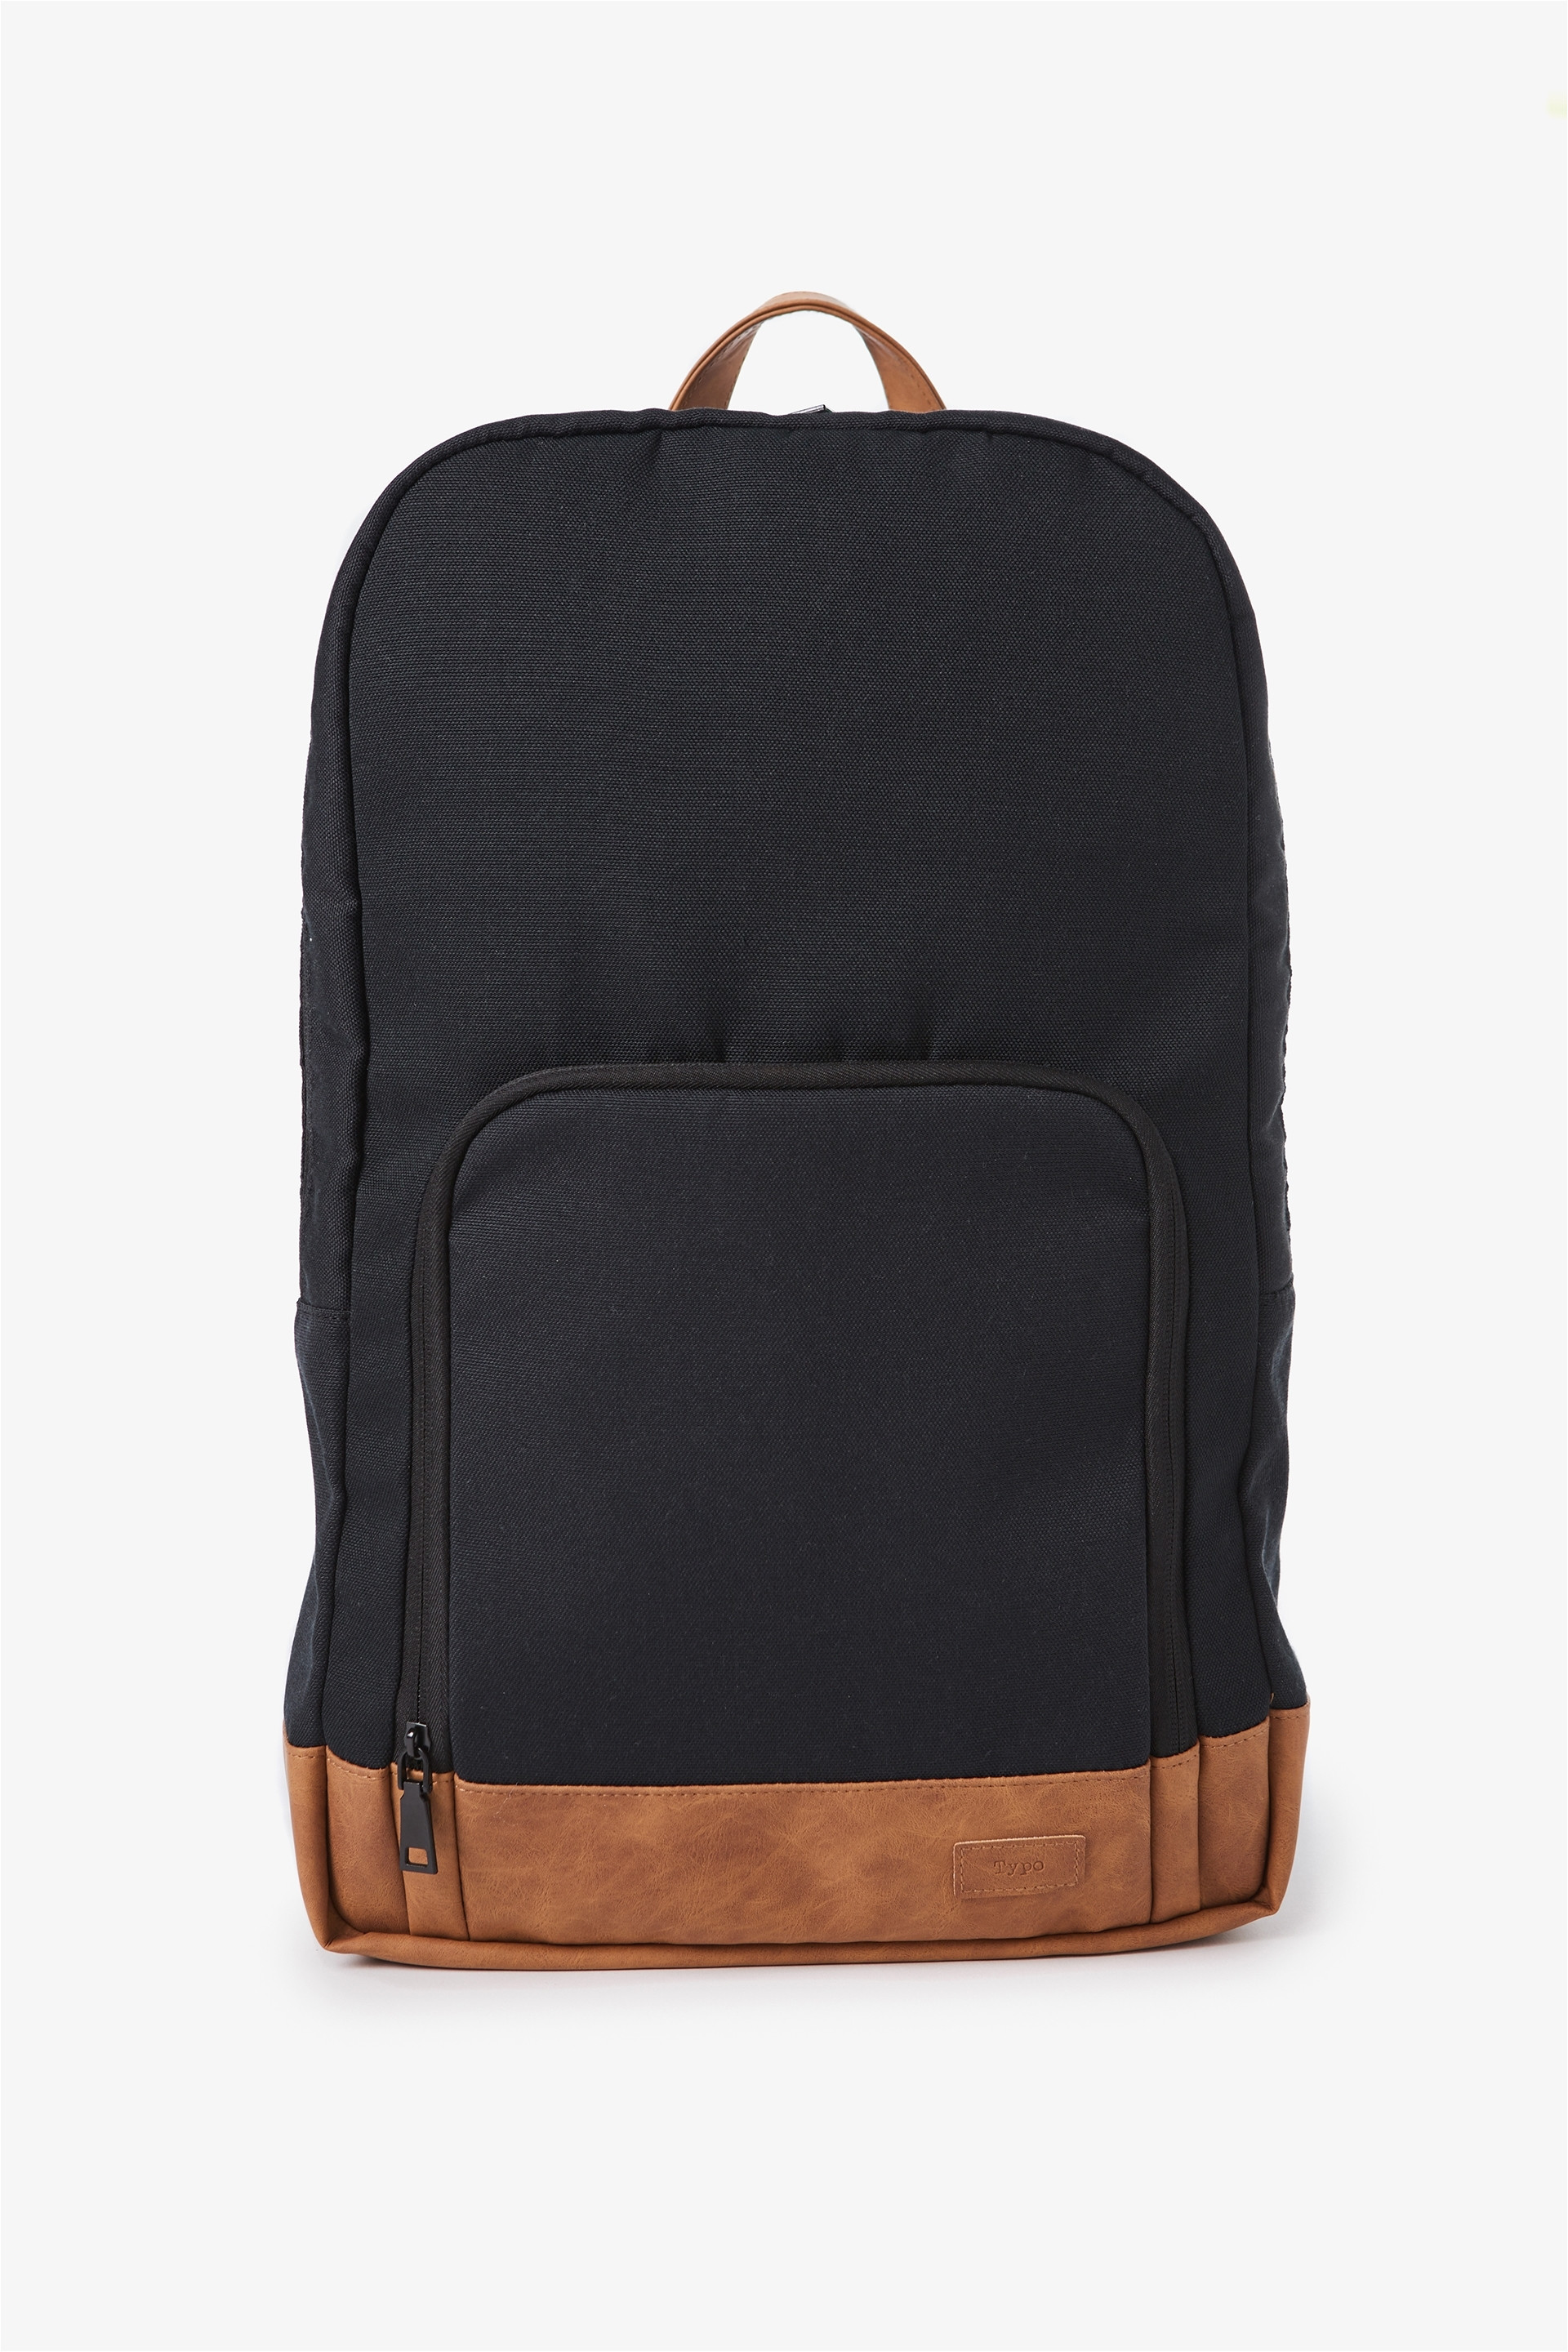 How to Check Cotton On Gift Card Balance Voyager Laptop Backpack